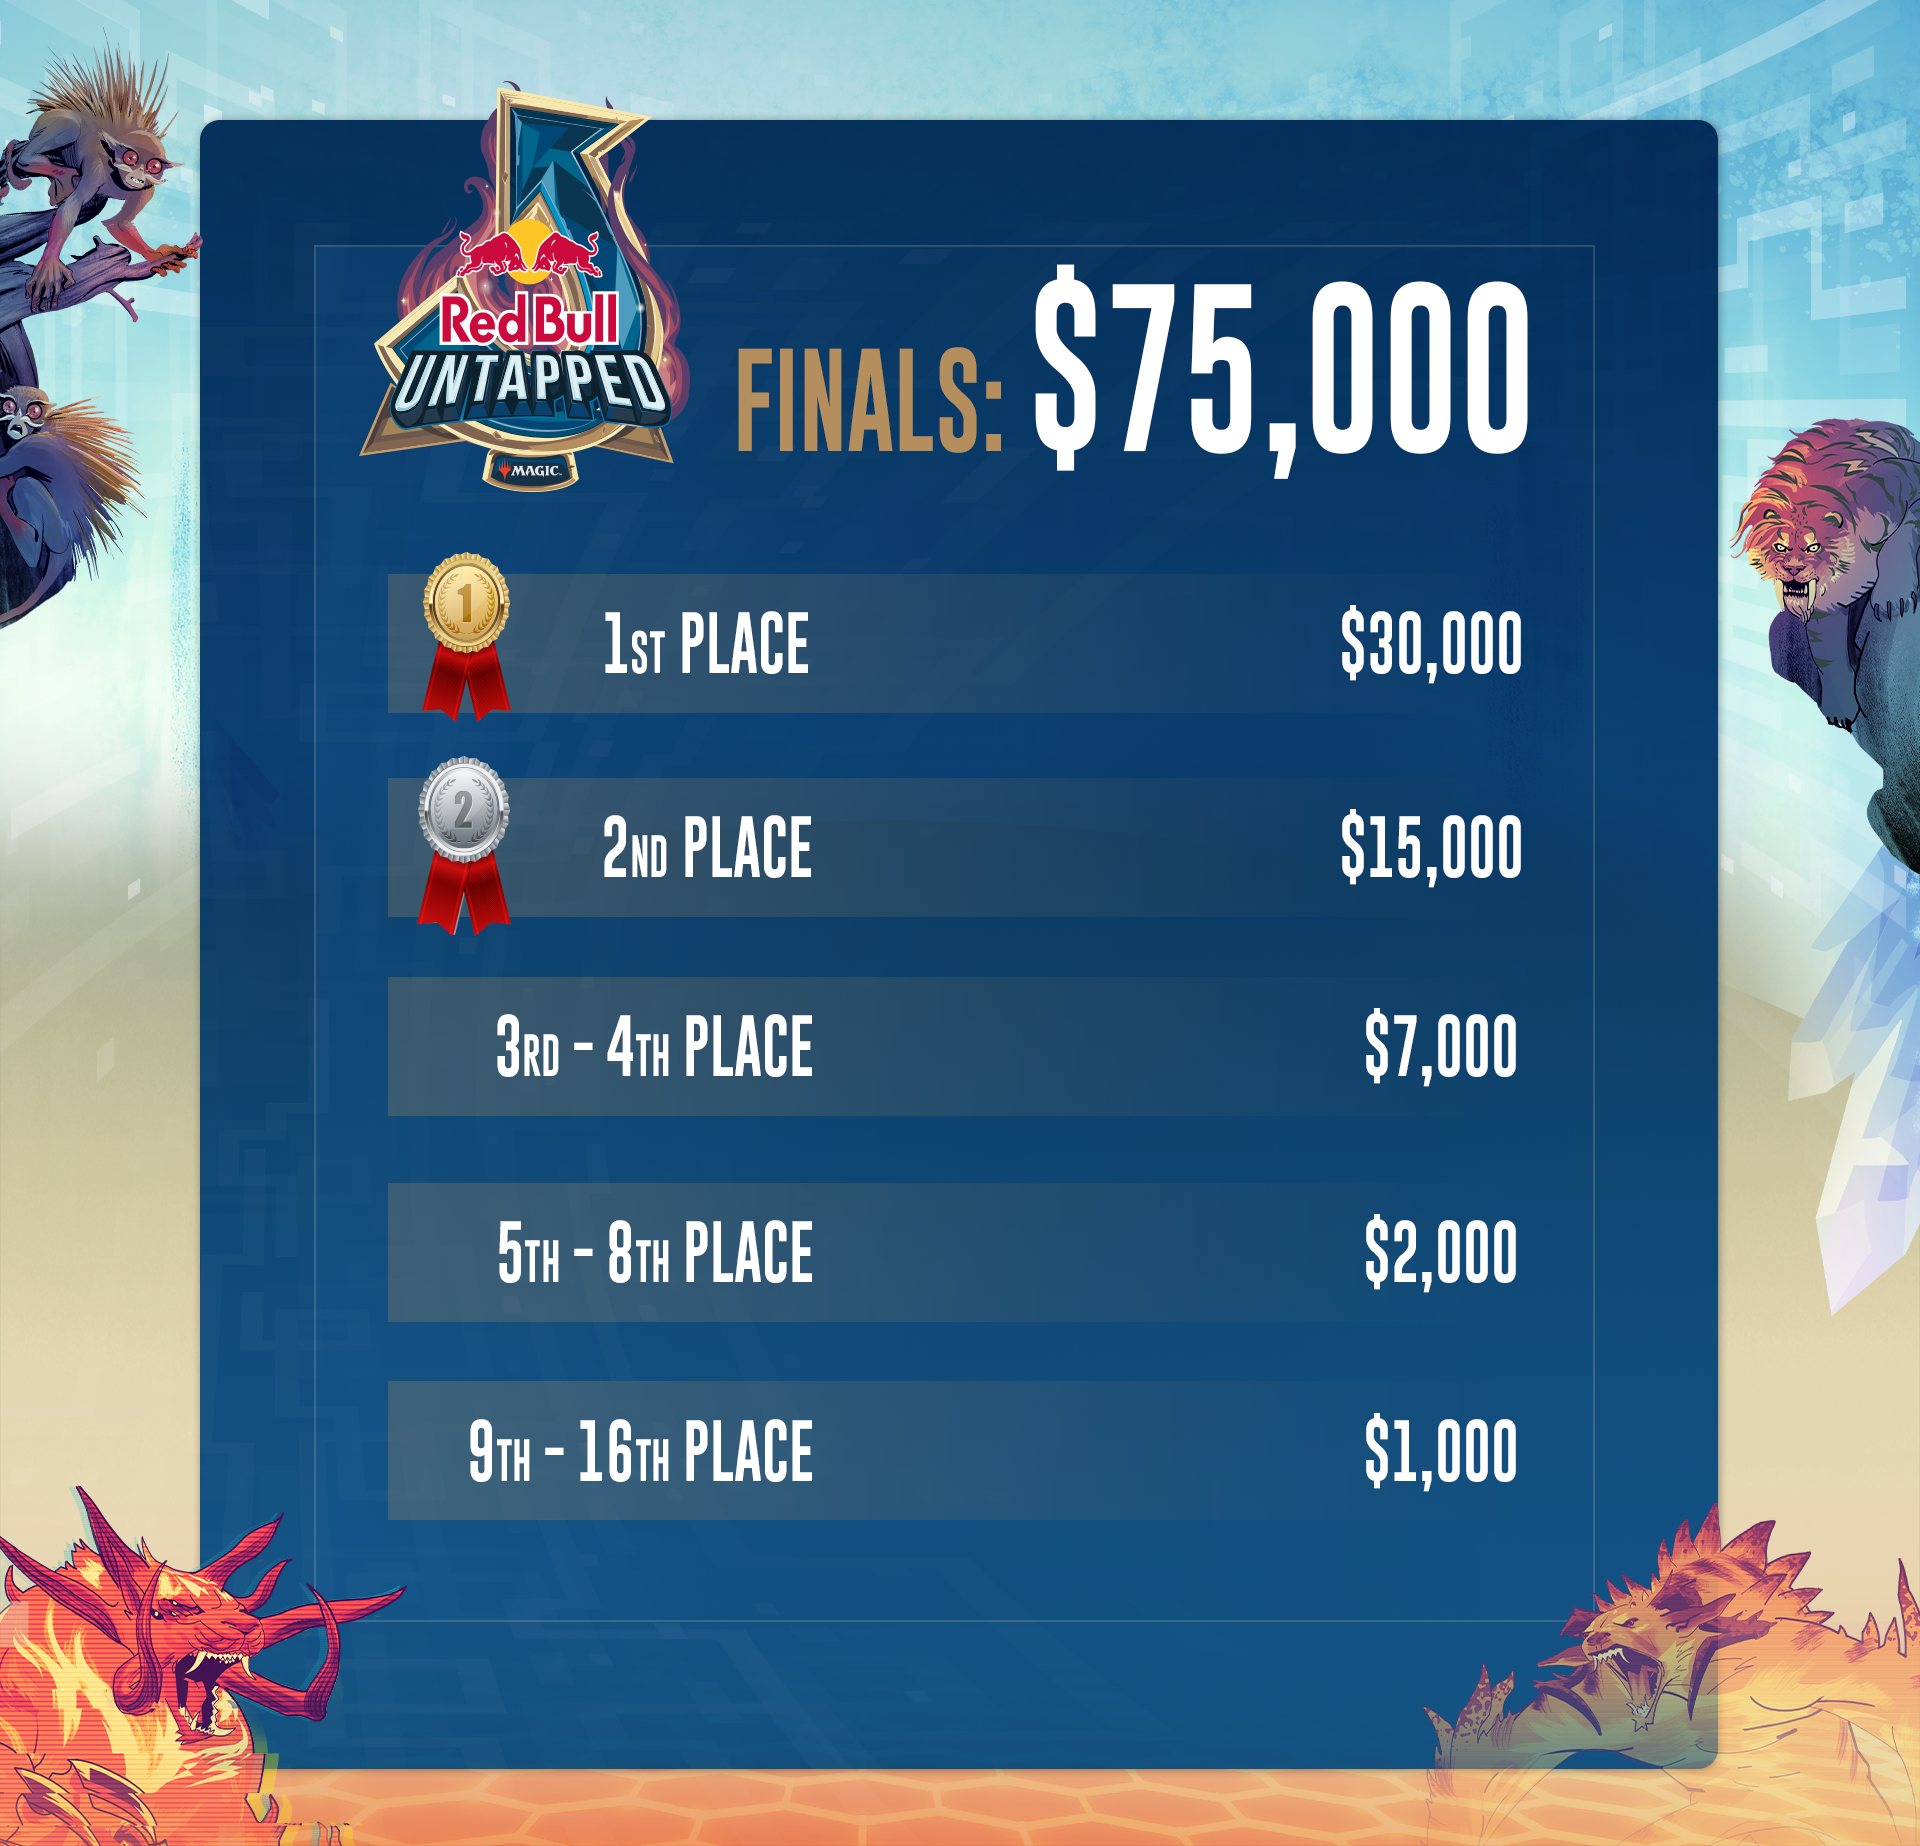 Red Bull Finals prize